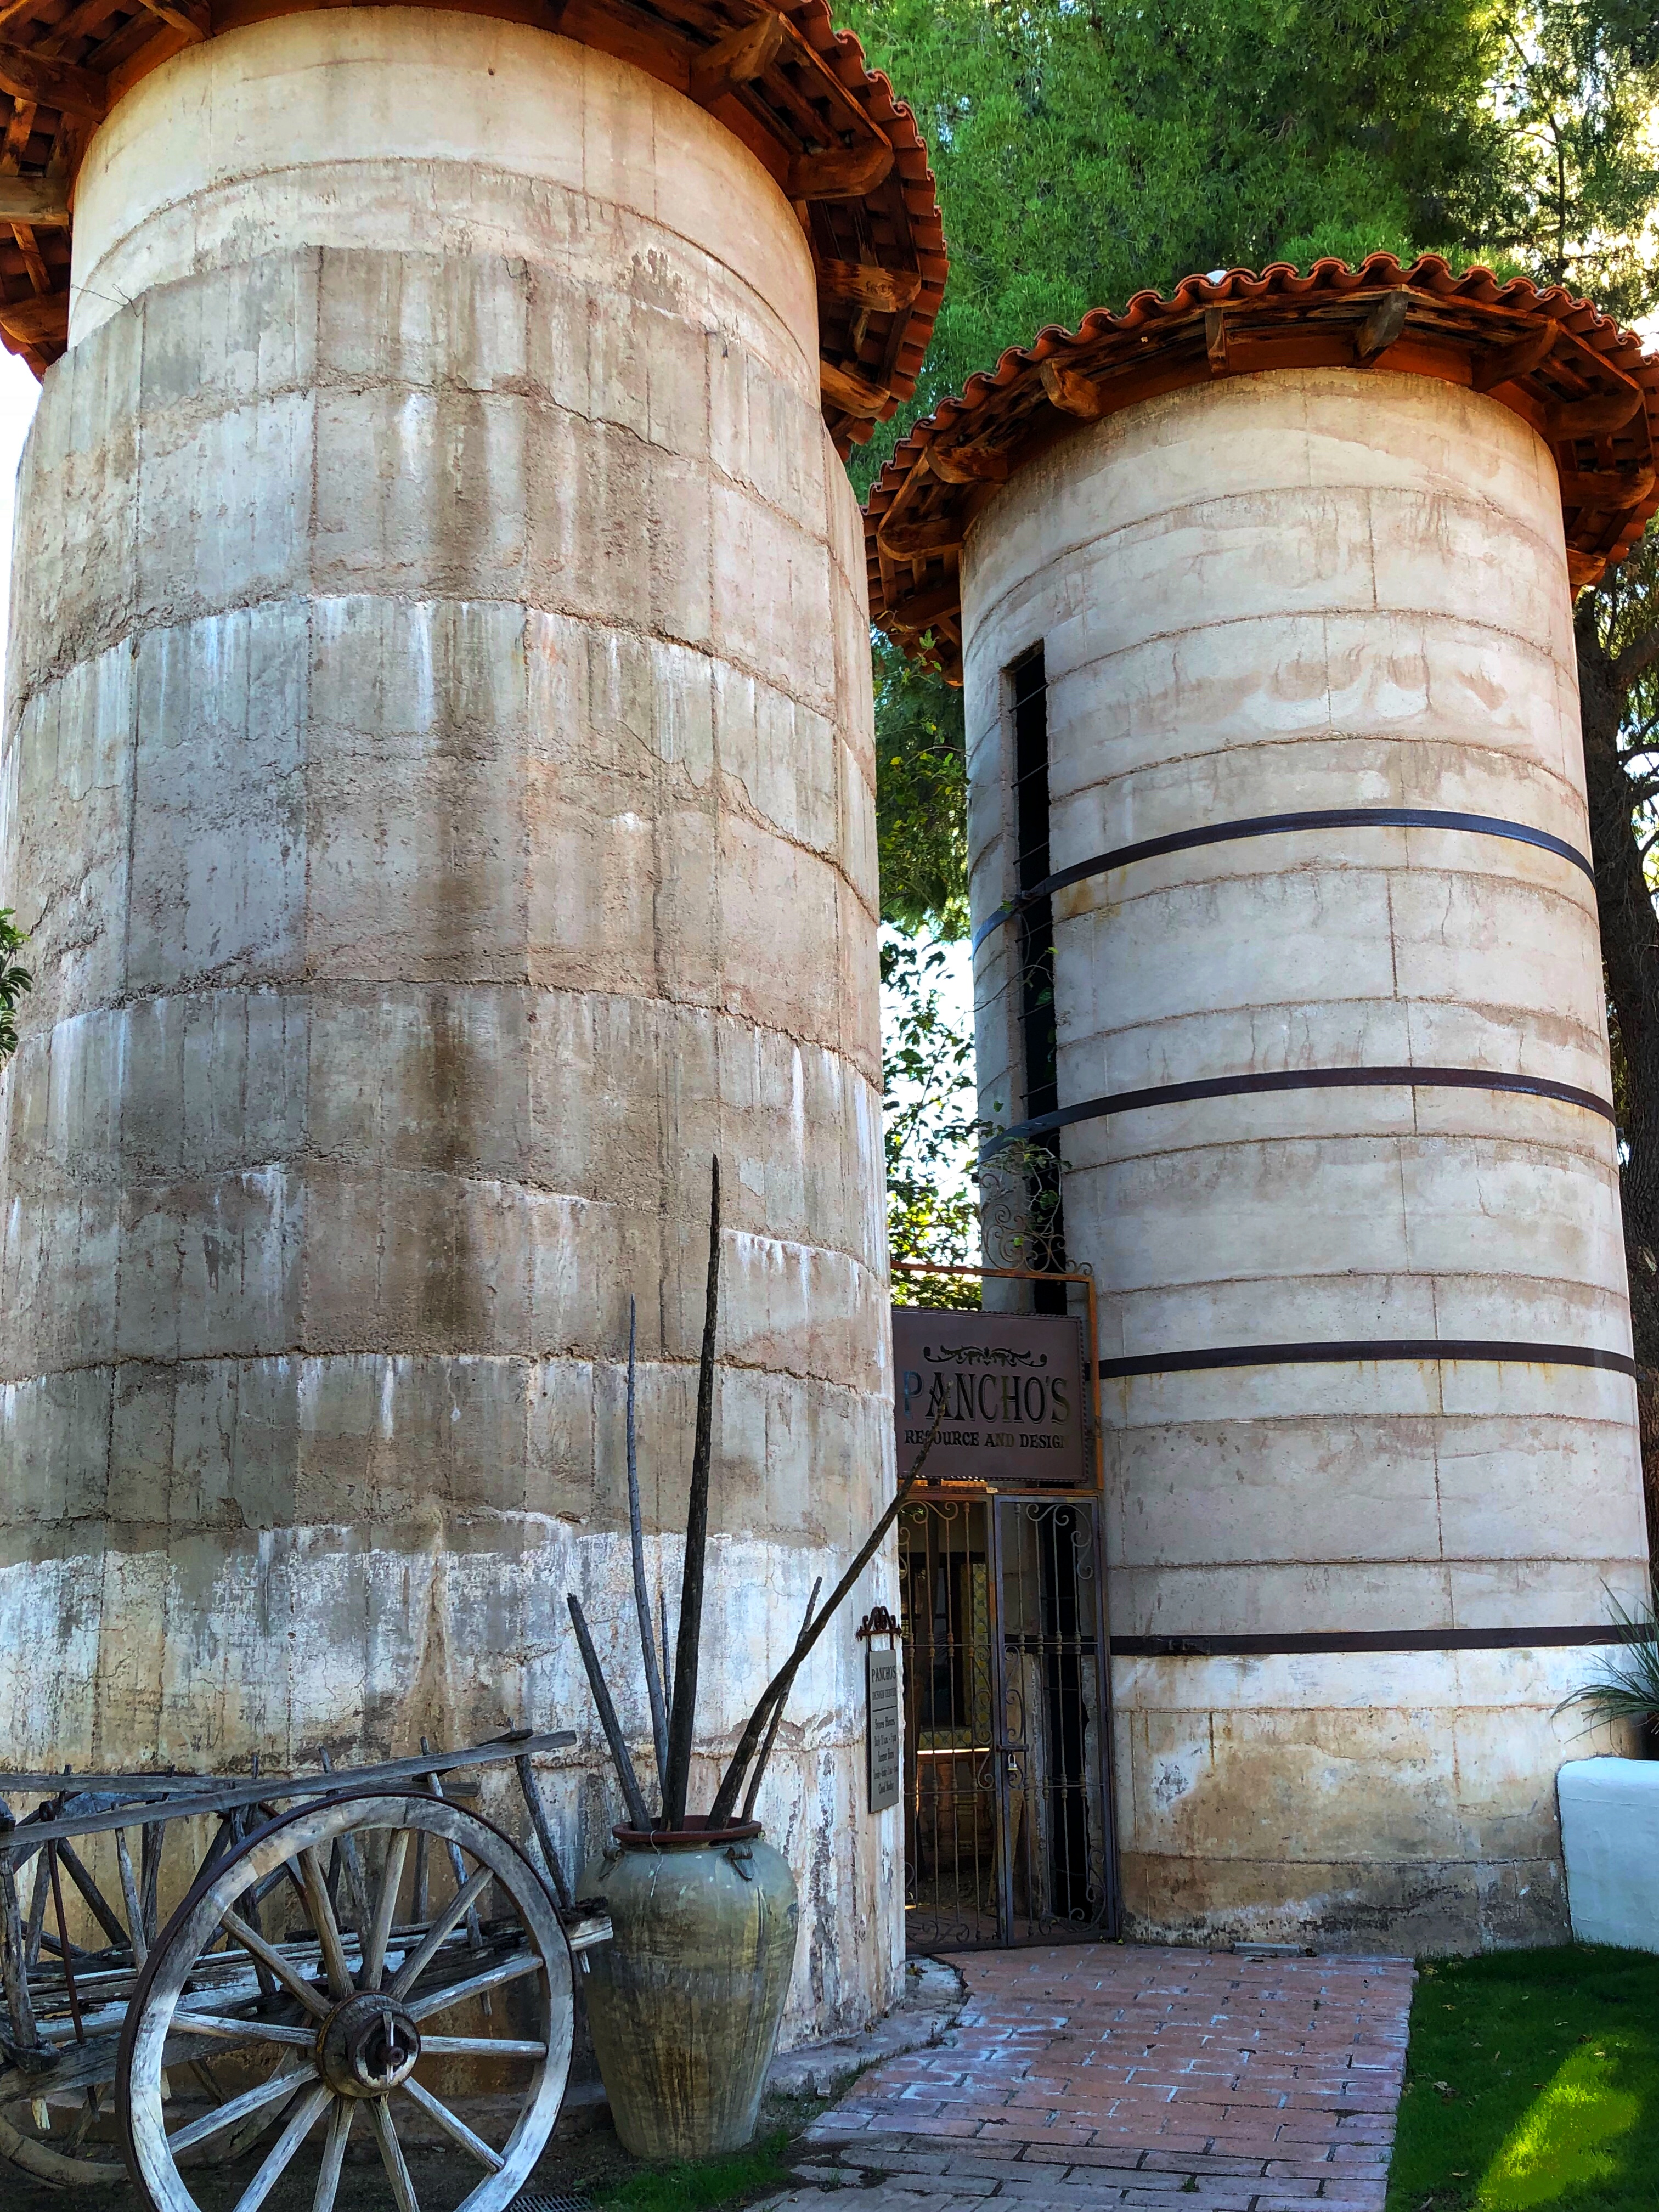 Two authentic silos